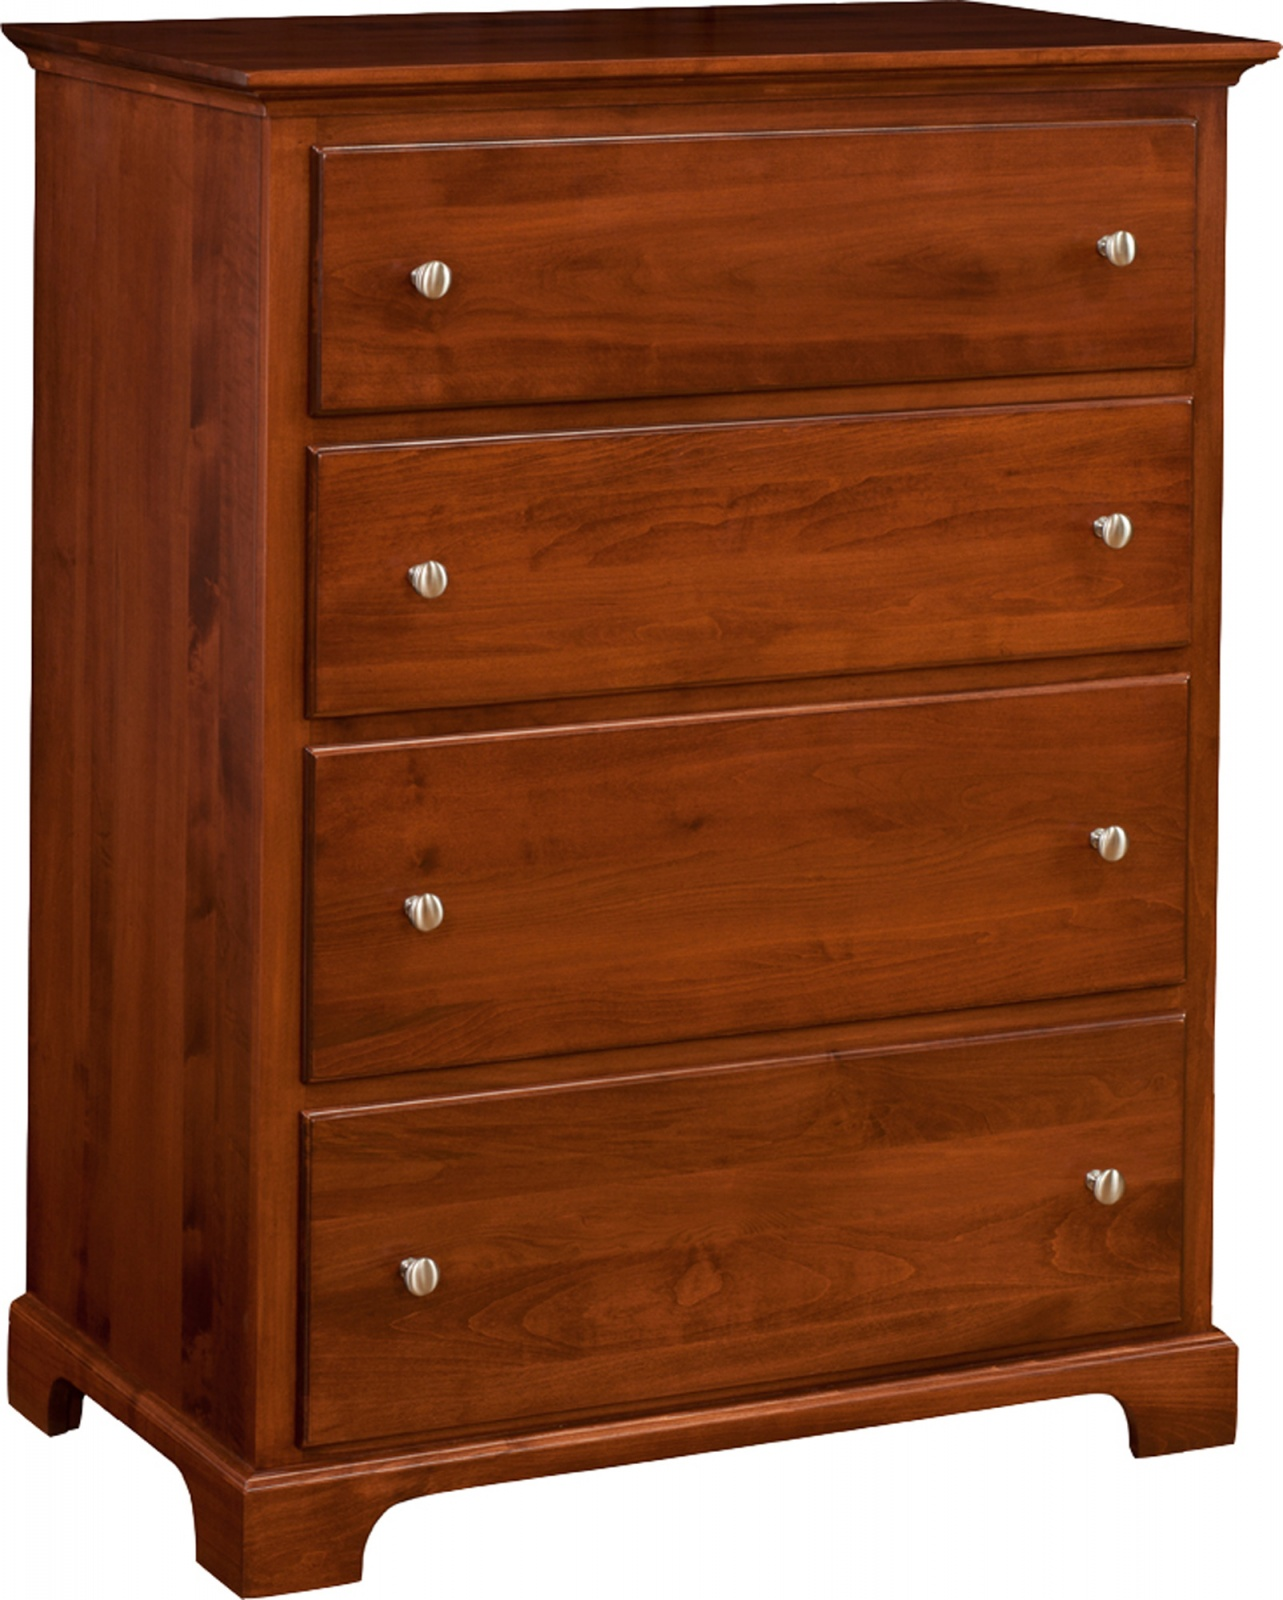 SO-126 4 Drawer Chest.jpg